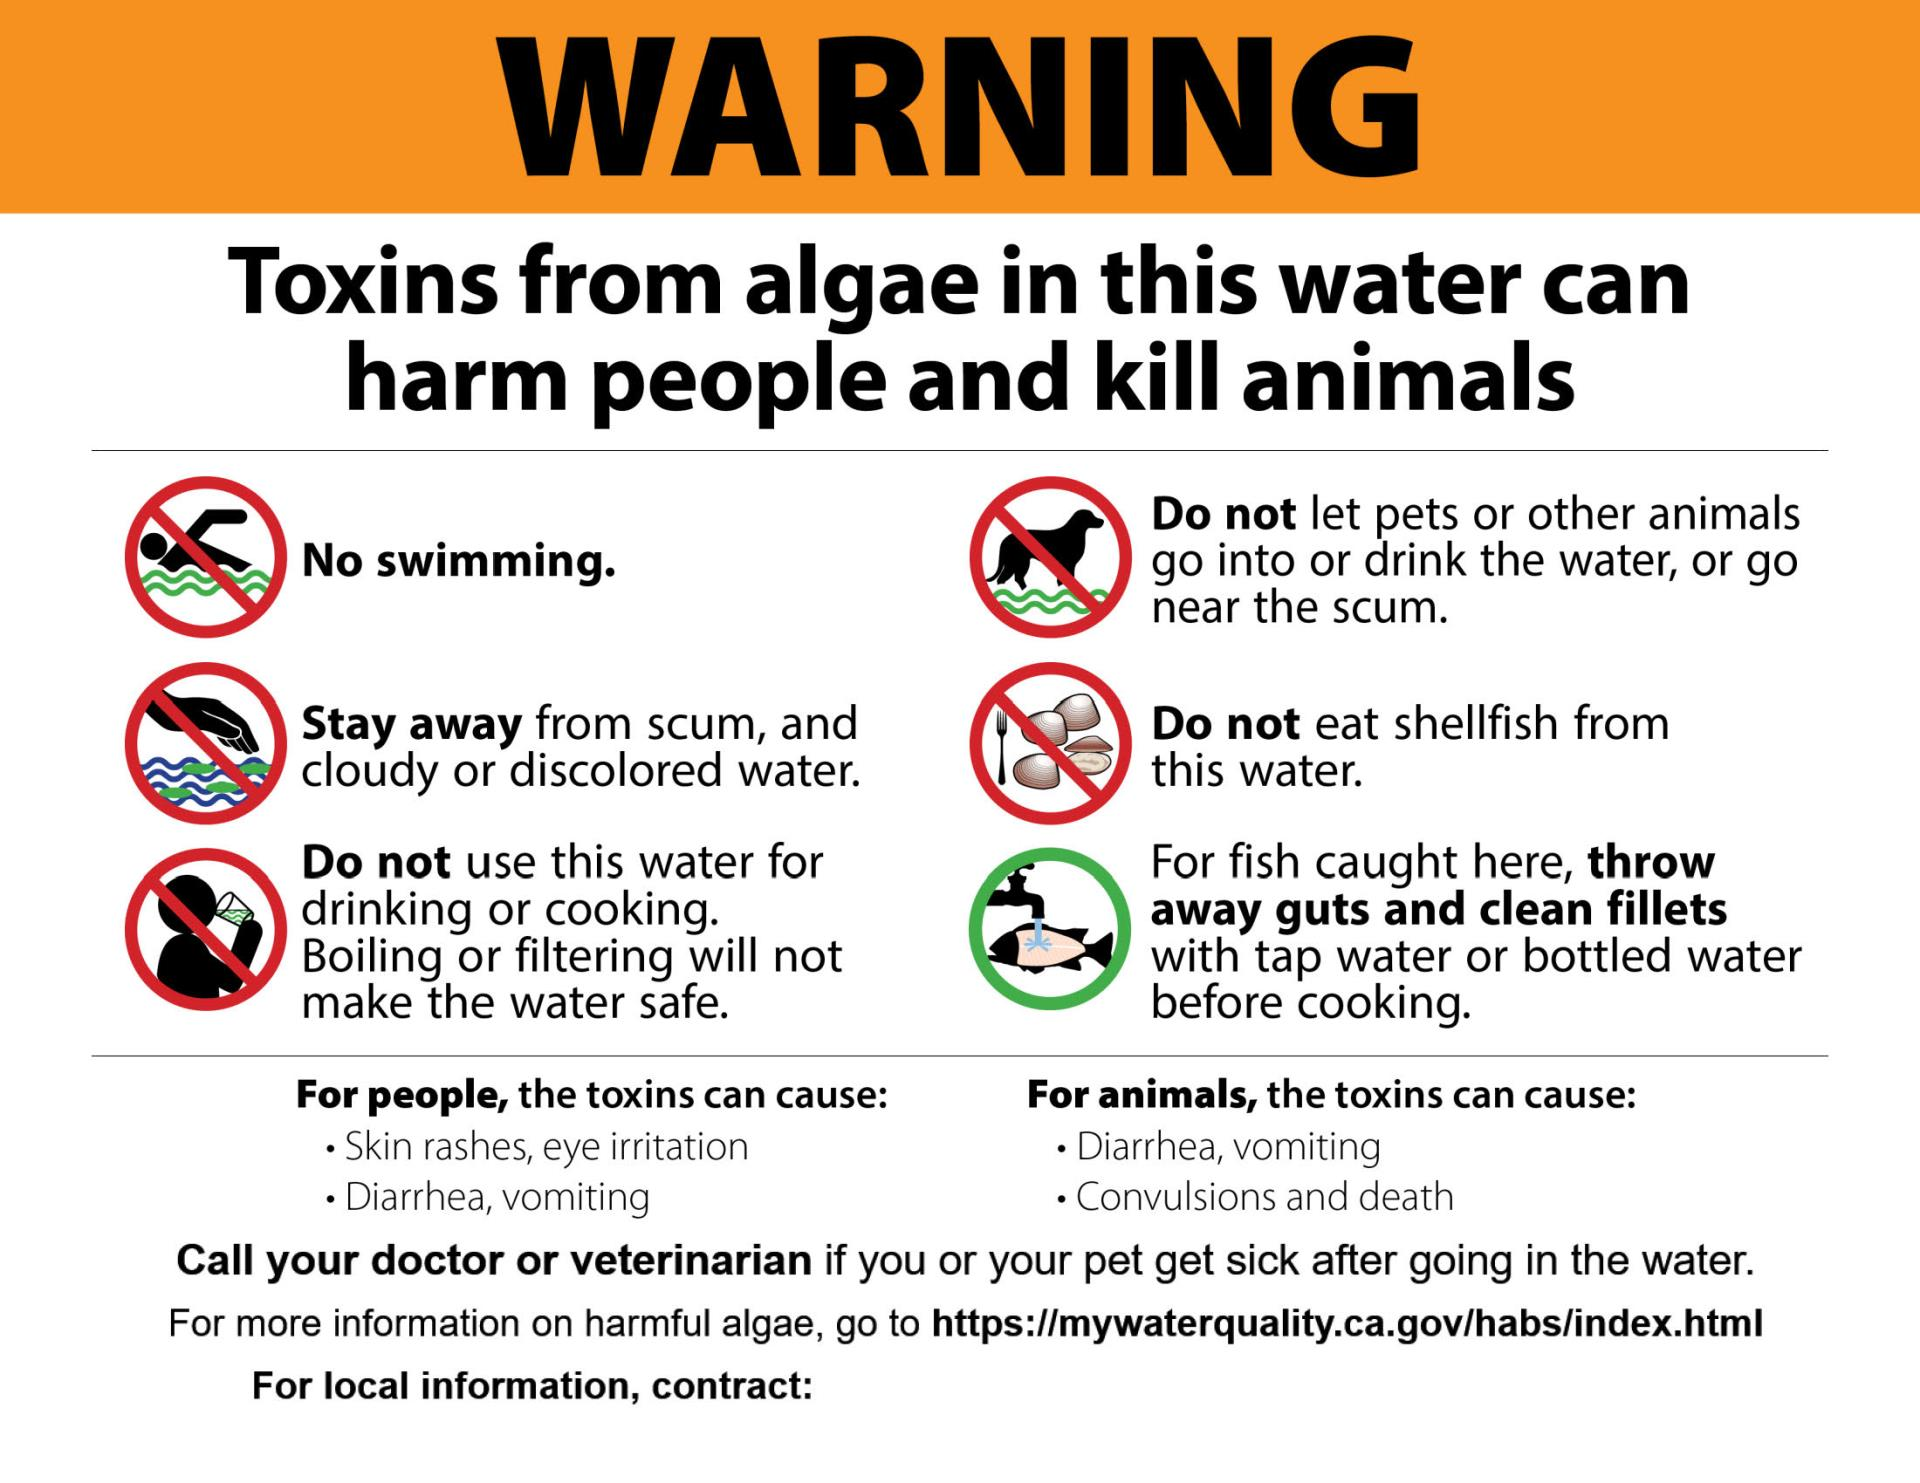 Warning - Toxins from algae in this water can harm people and kill animals